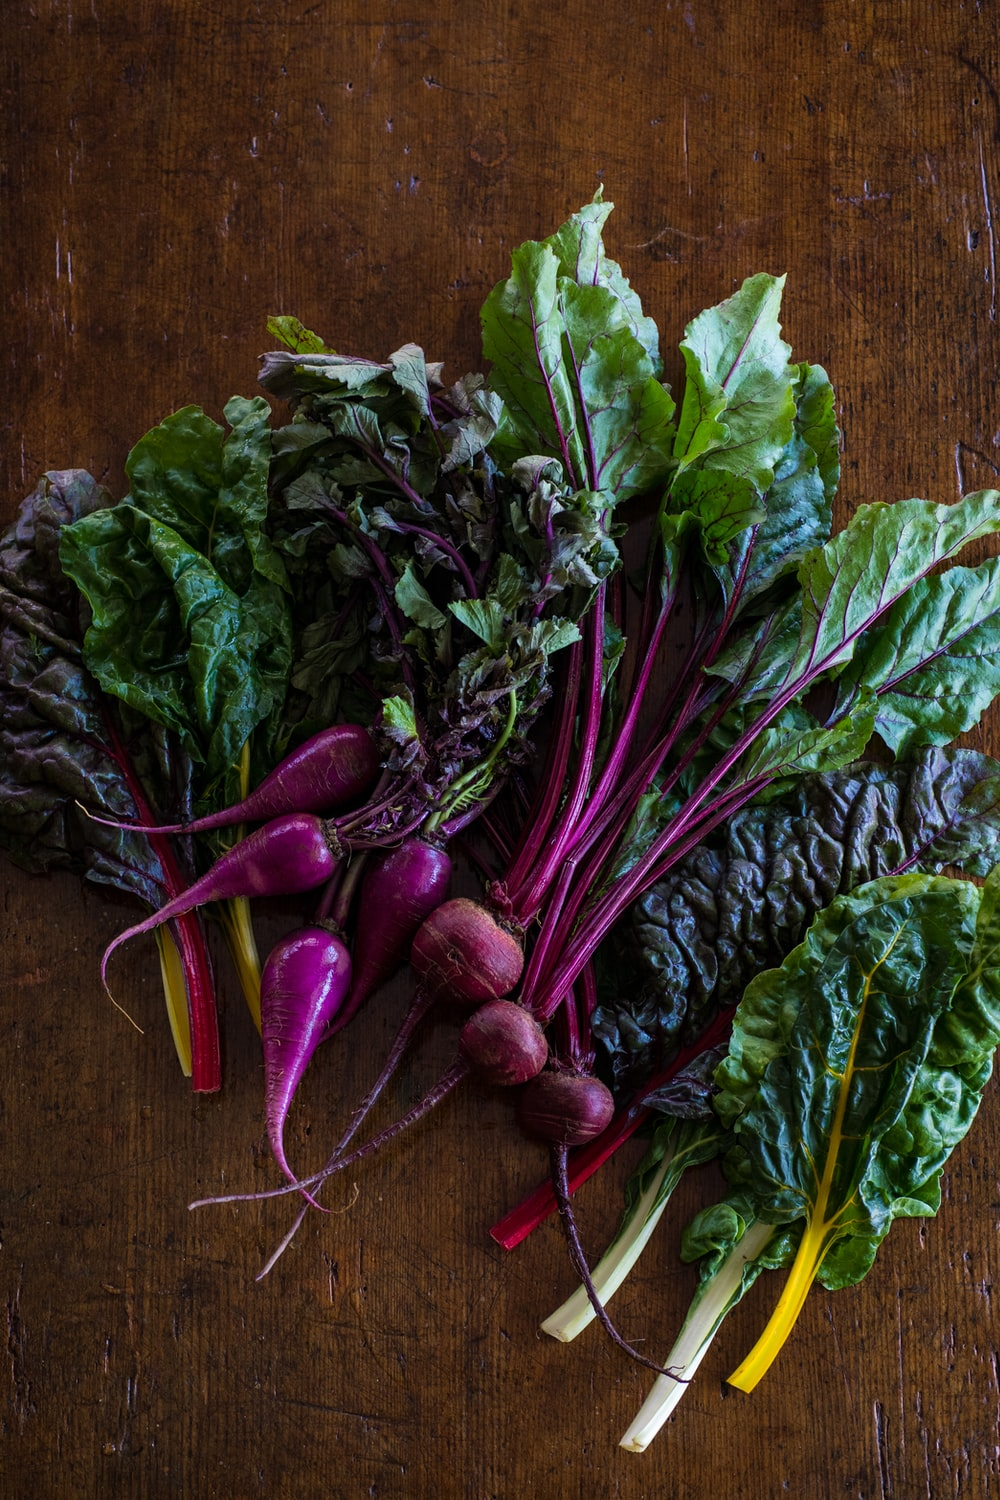 green and purple vegetable on brown wooden table